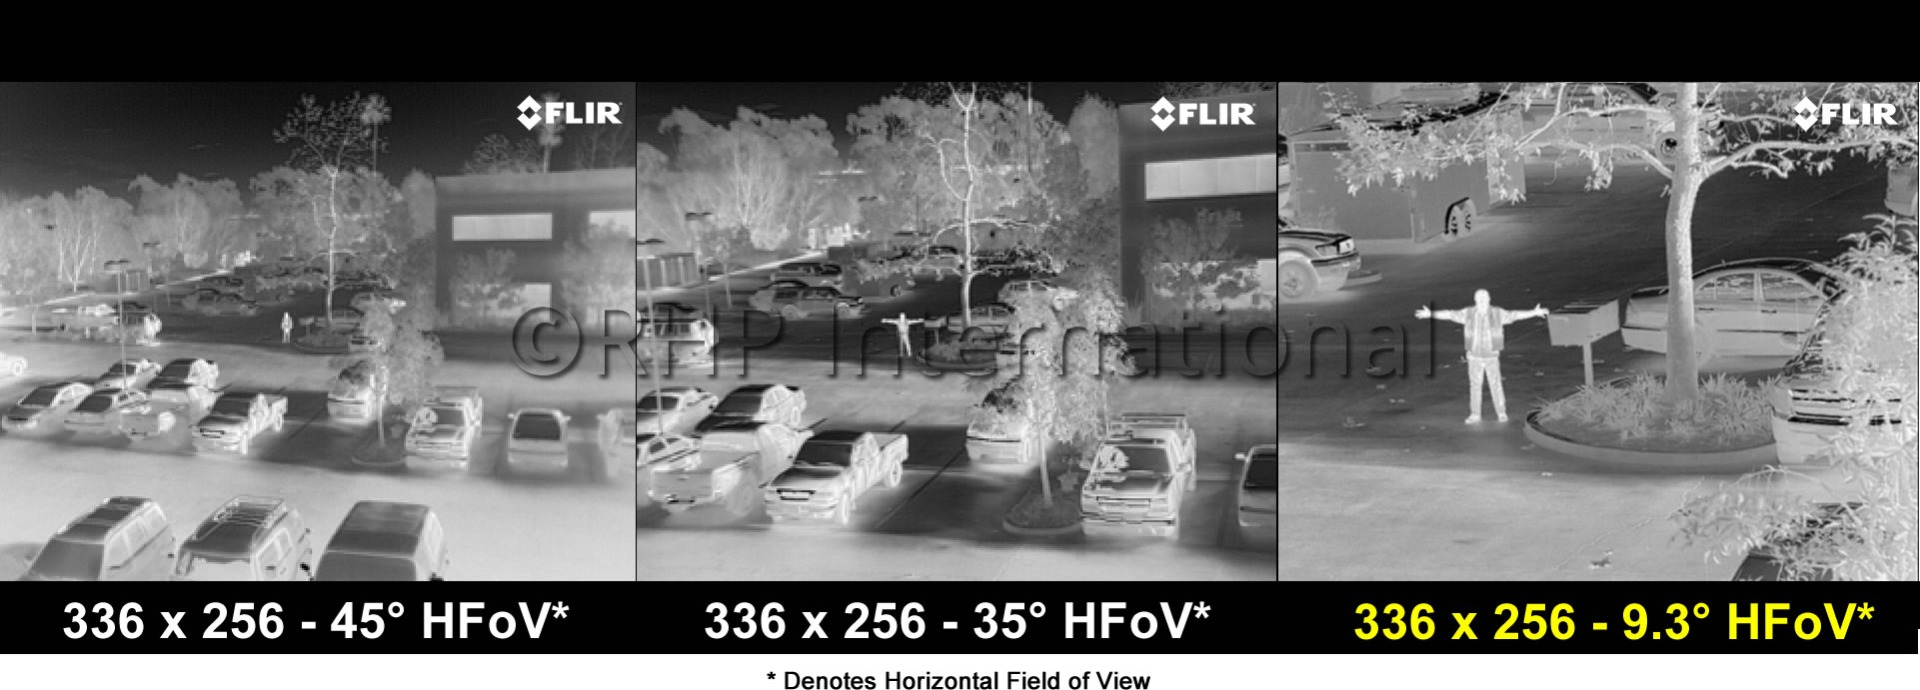 FLIR VUE PRO 336 Thermal Imager 35mm Lens - 30Hz